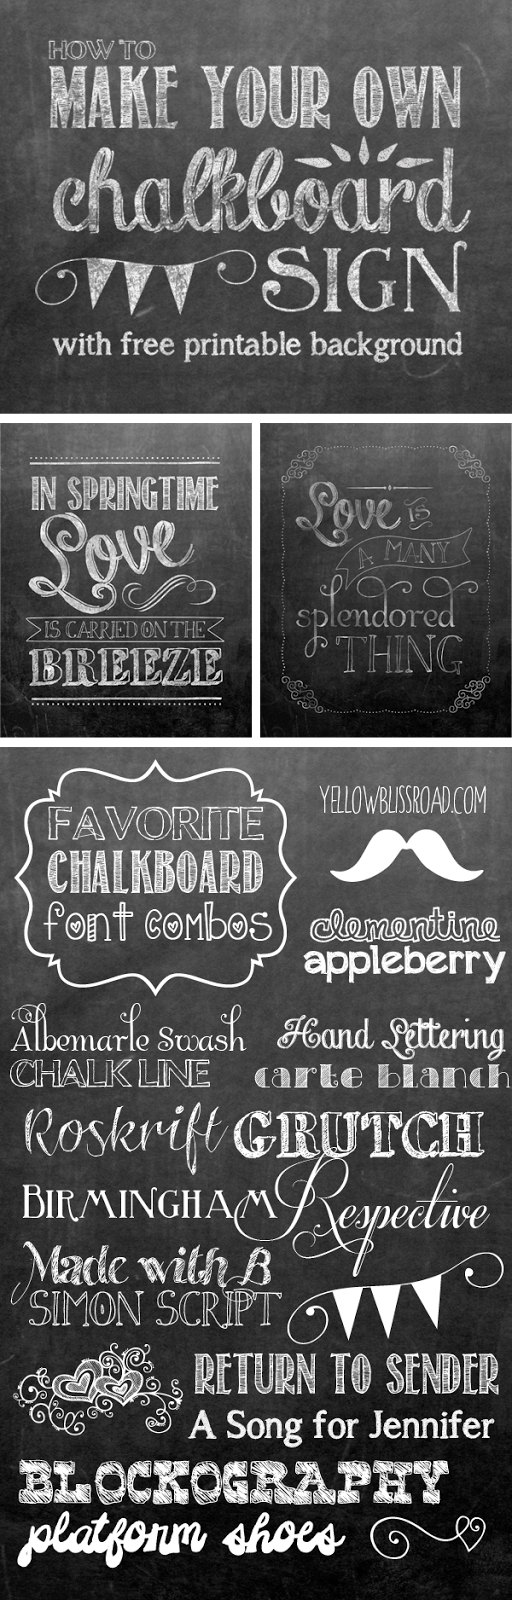 photo about Free Chalkboard Printable identify How in the direction of Deliver Your Individual Printable Chalkboard Signal - Yellow